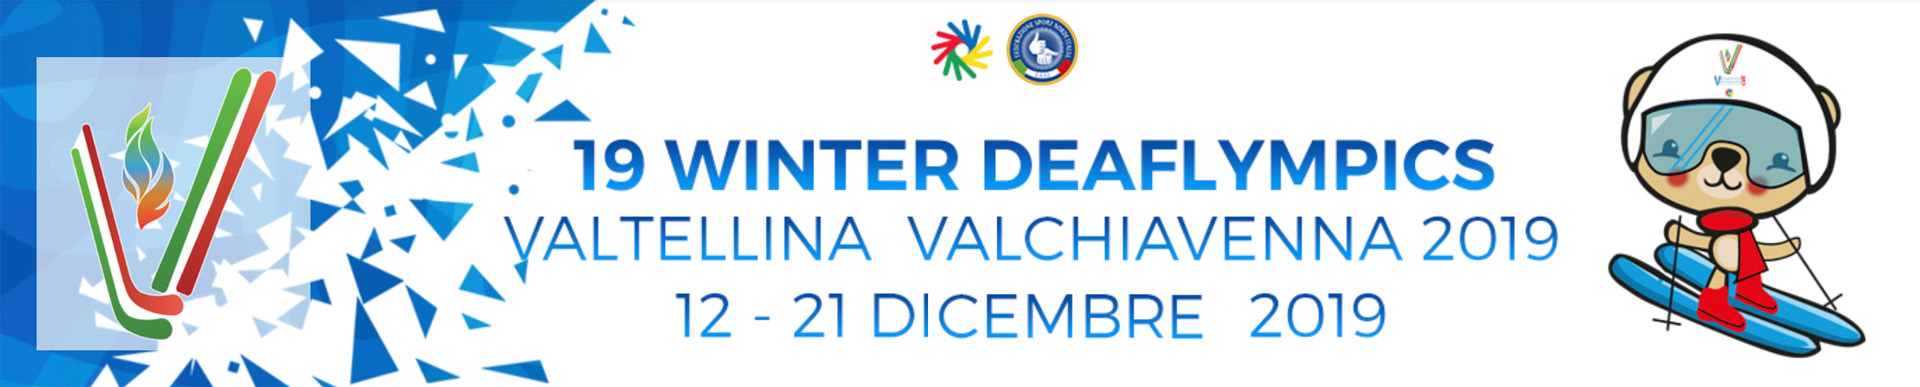 Winter Deaflympics games 2019